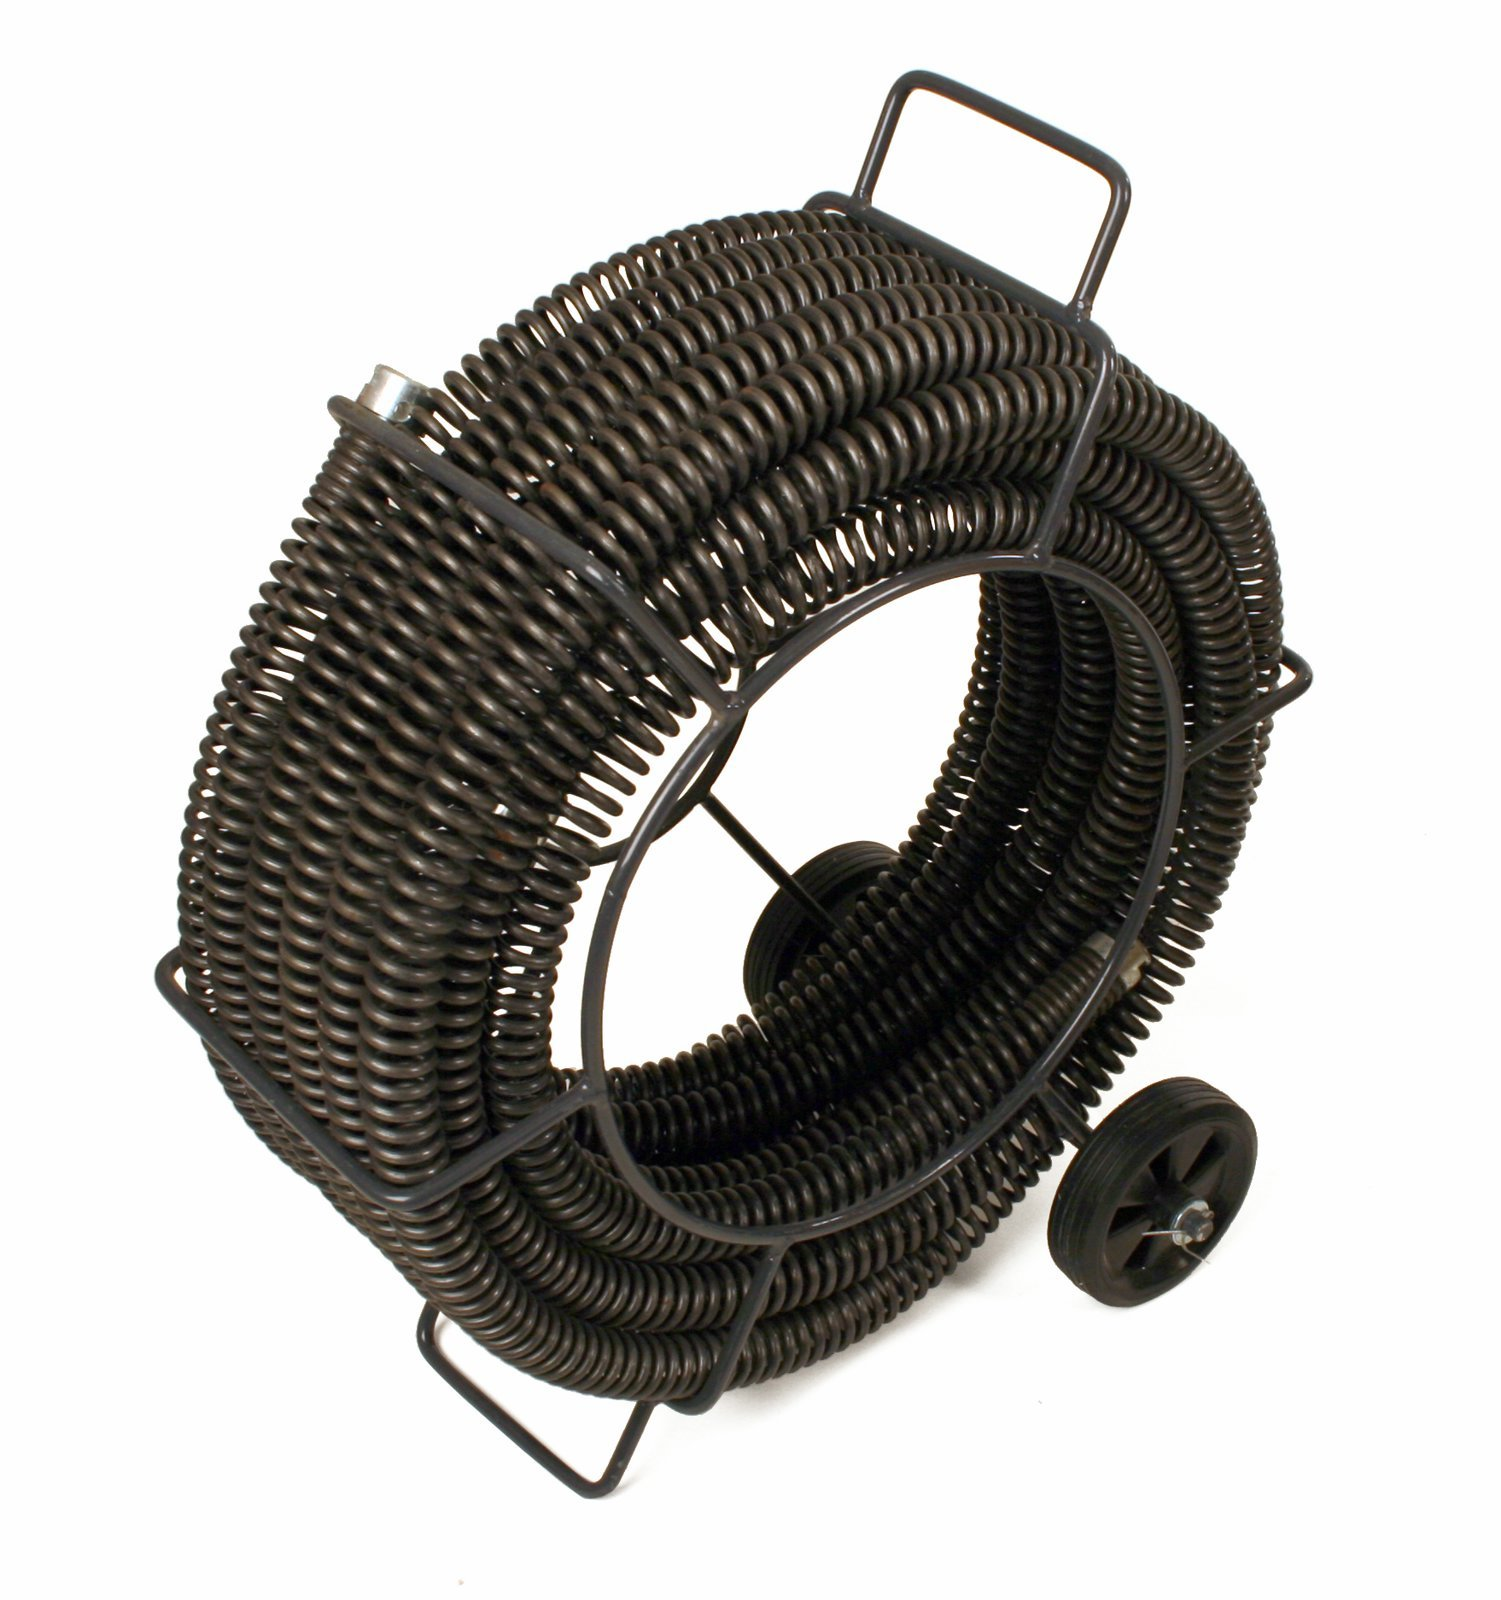 Steel Dragon Tools 62280 C-11 Drain Cleaner Snake Cable 1-1/4''x 60' fits RIDGID K1500 Drain Cleaning Machine